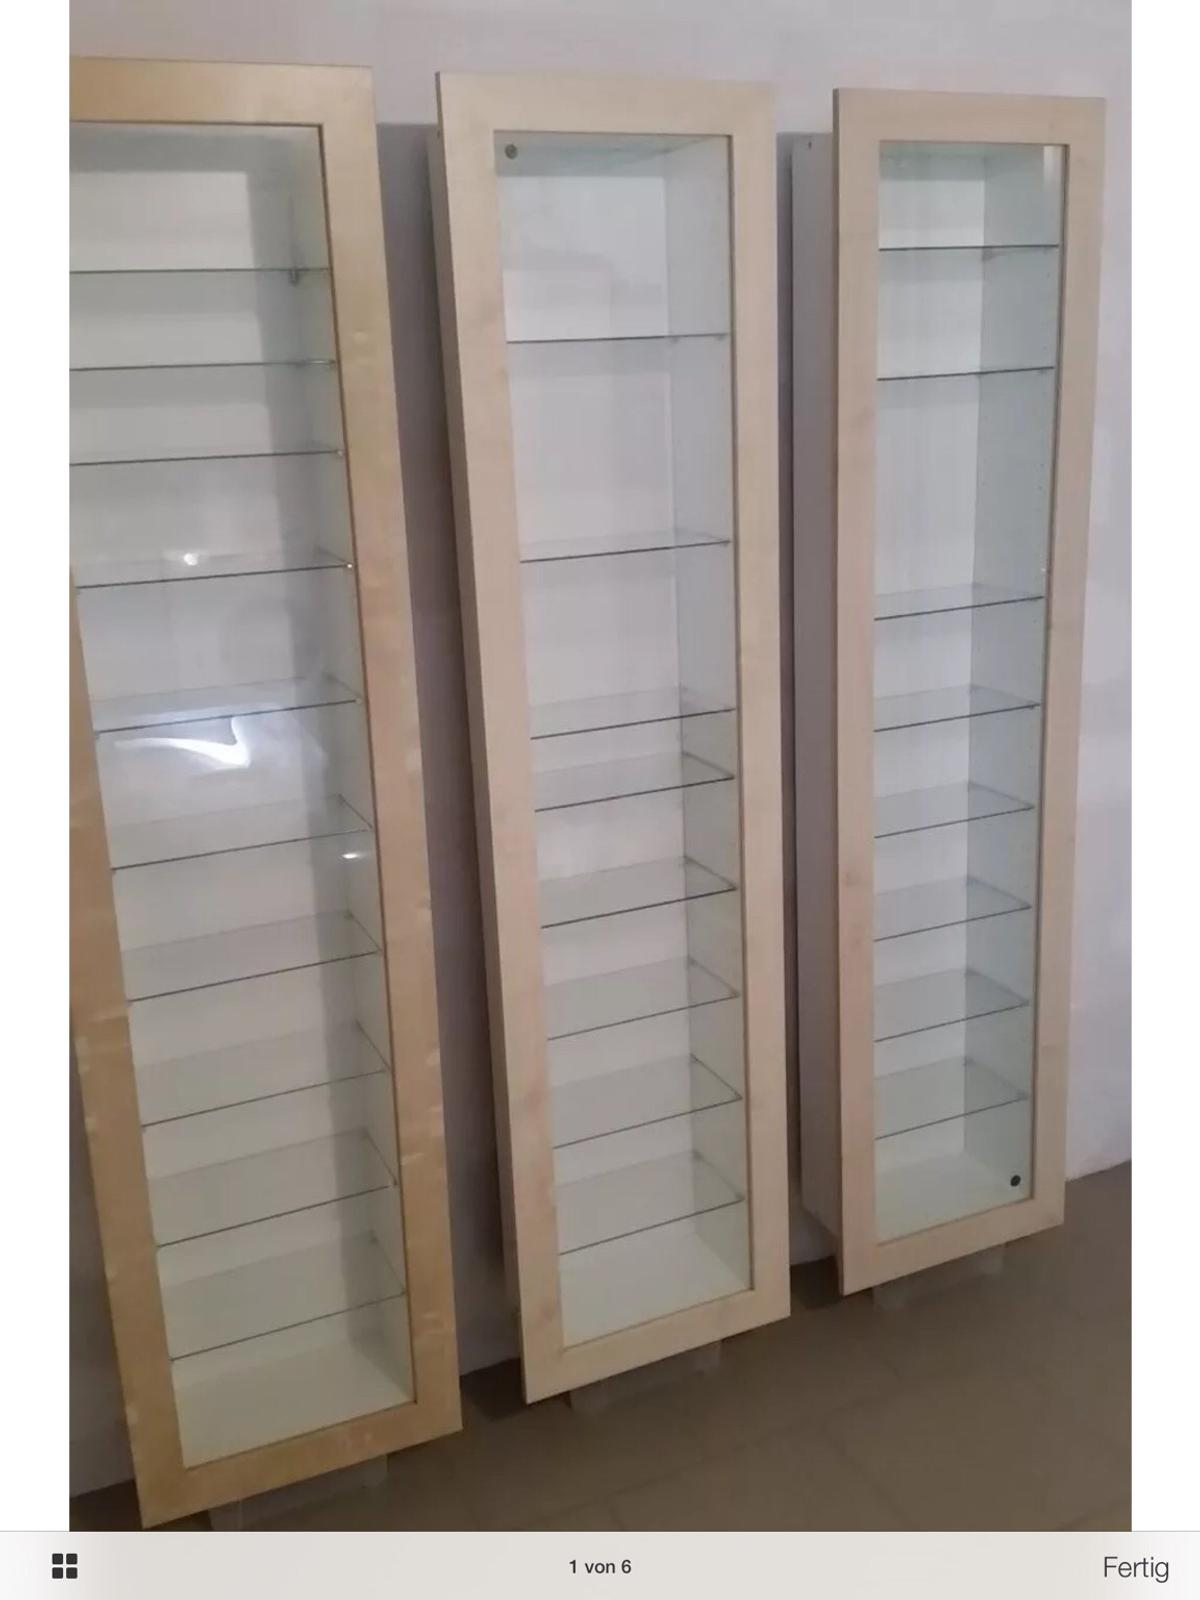 2 X Hängevitrine Bertby Von Ikea In 53567 Asbach For 60 00 For Sale Shpock